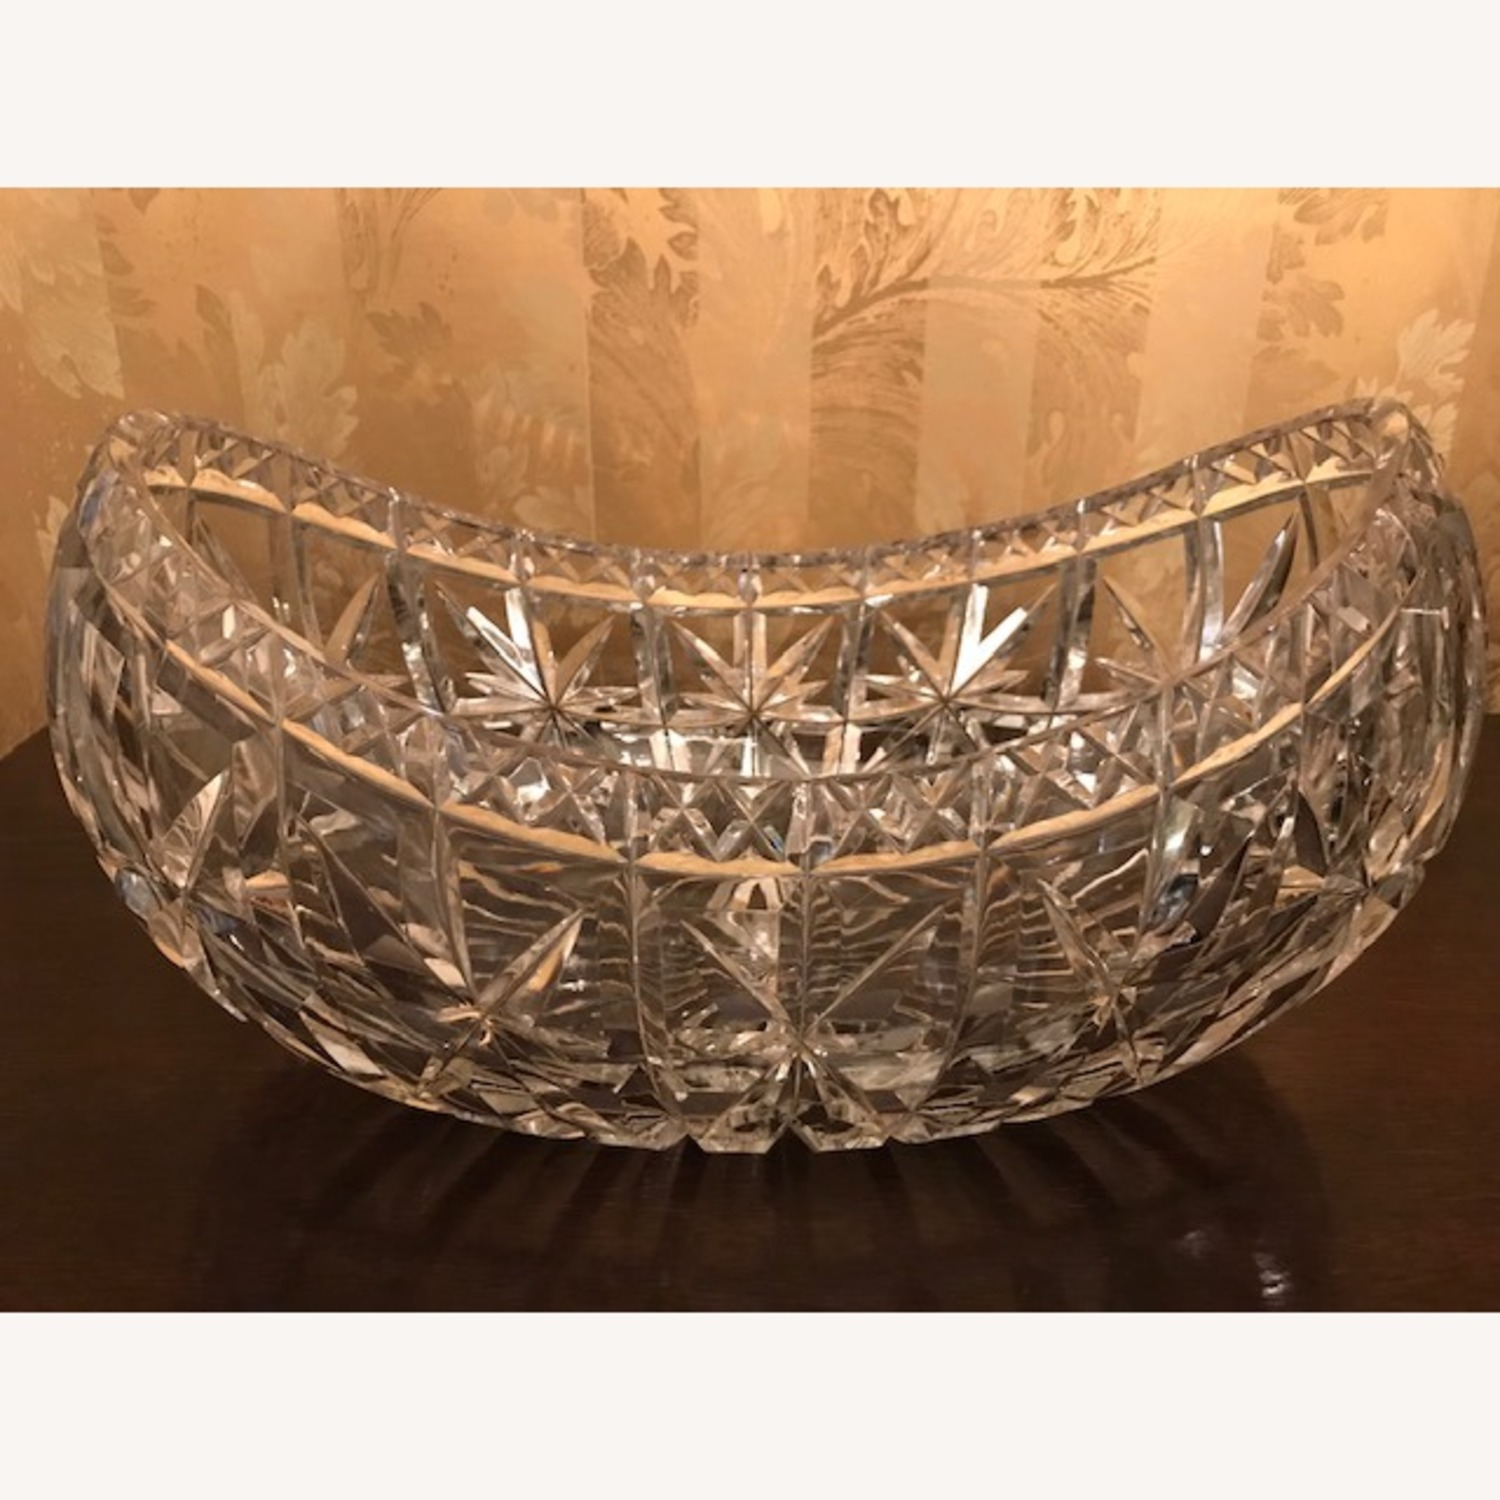 Enormous Antique 1800s Hand Cut Crystal Boat Bowl - image-1